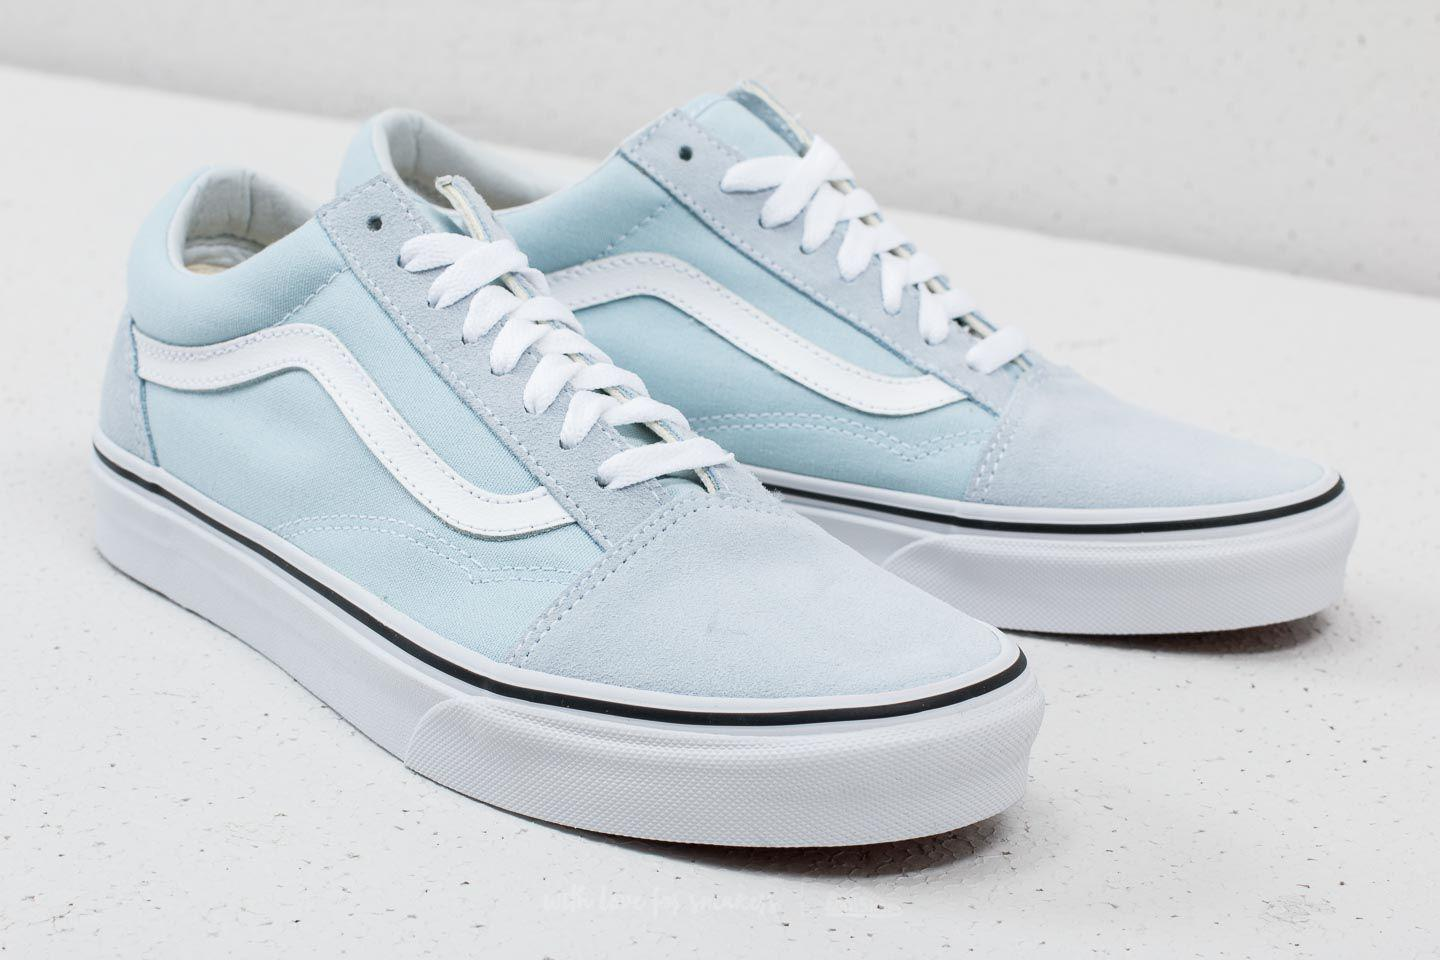 f08f7b7efa0 Lyst - Vans Old Skool Baby Blue  True White